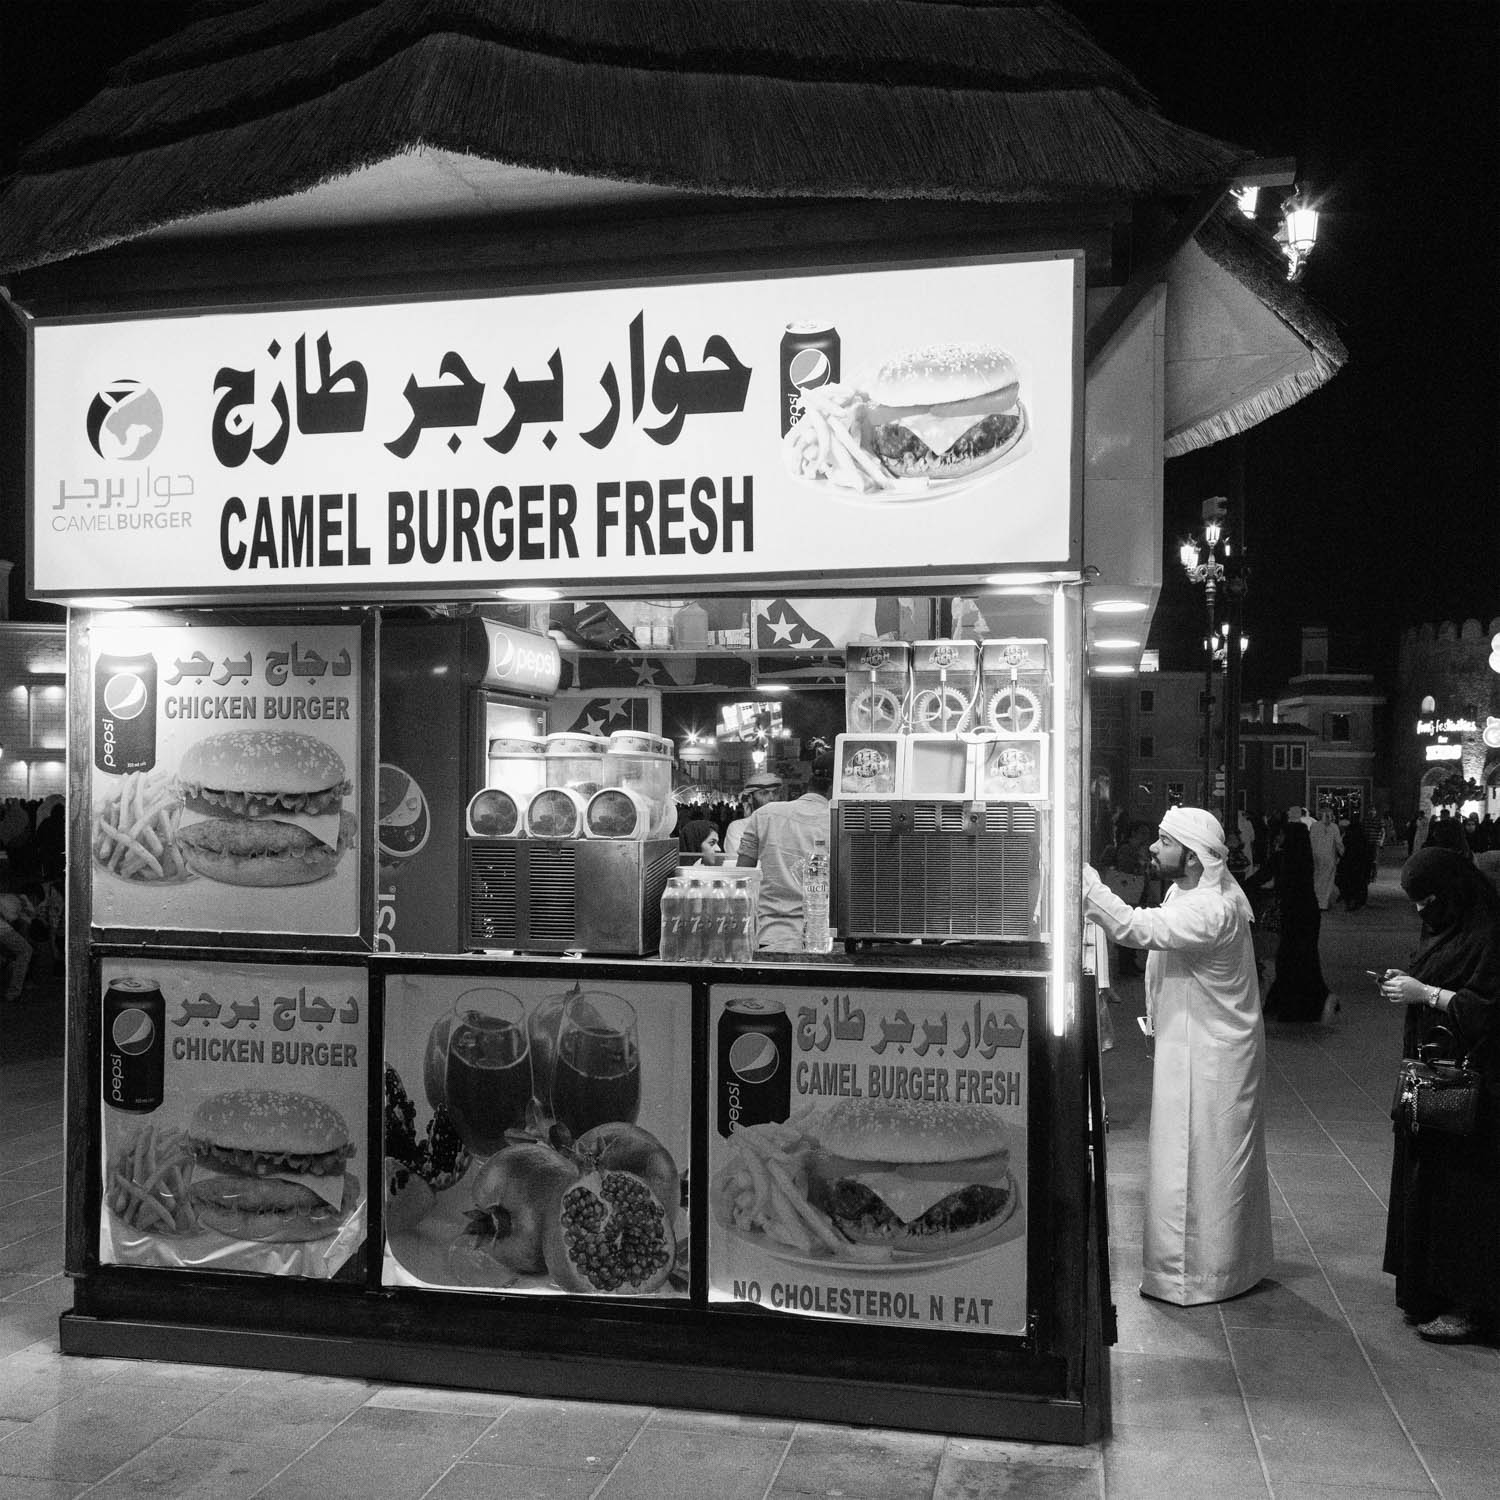 'Camel Burger Stand' part of the project 'From the inside out' by Duncan Chard